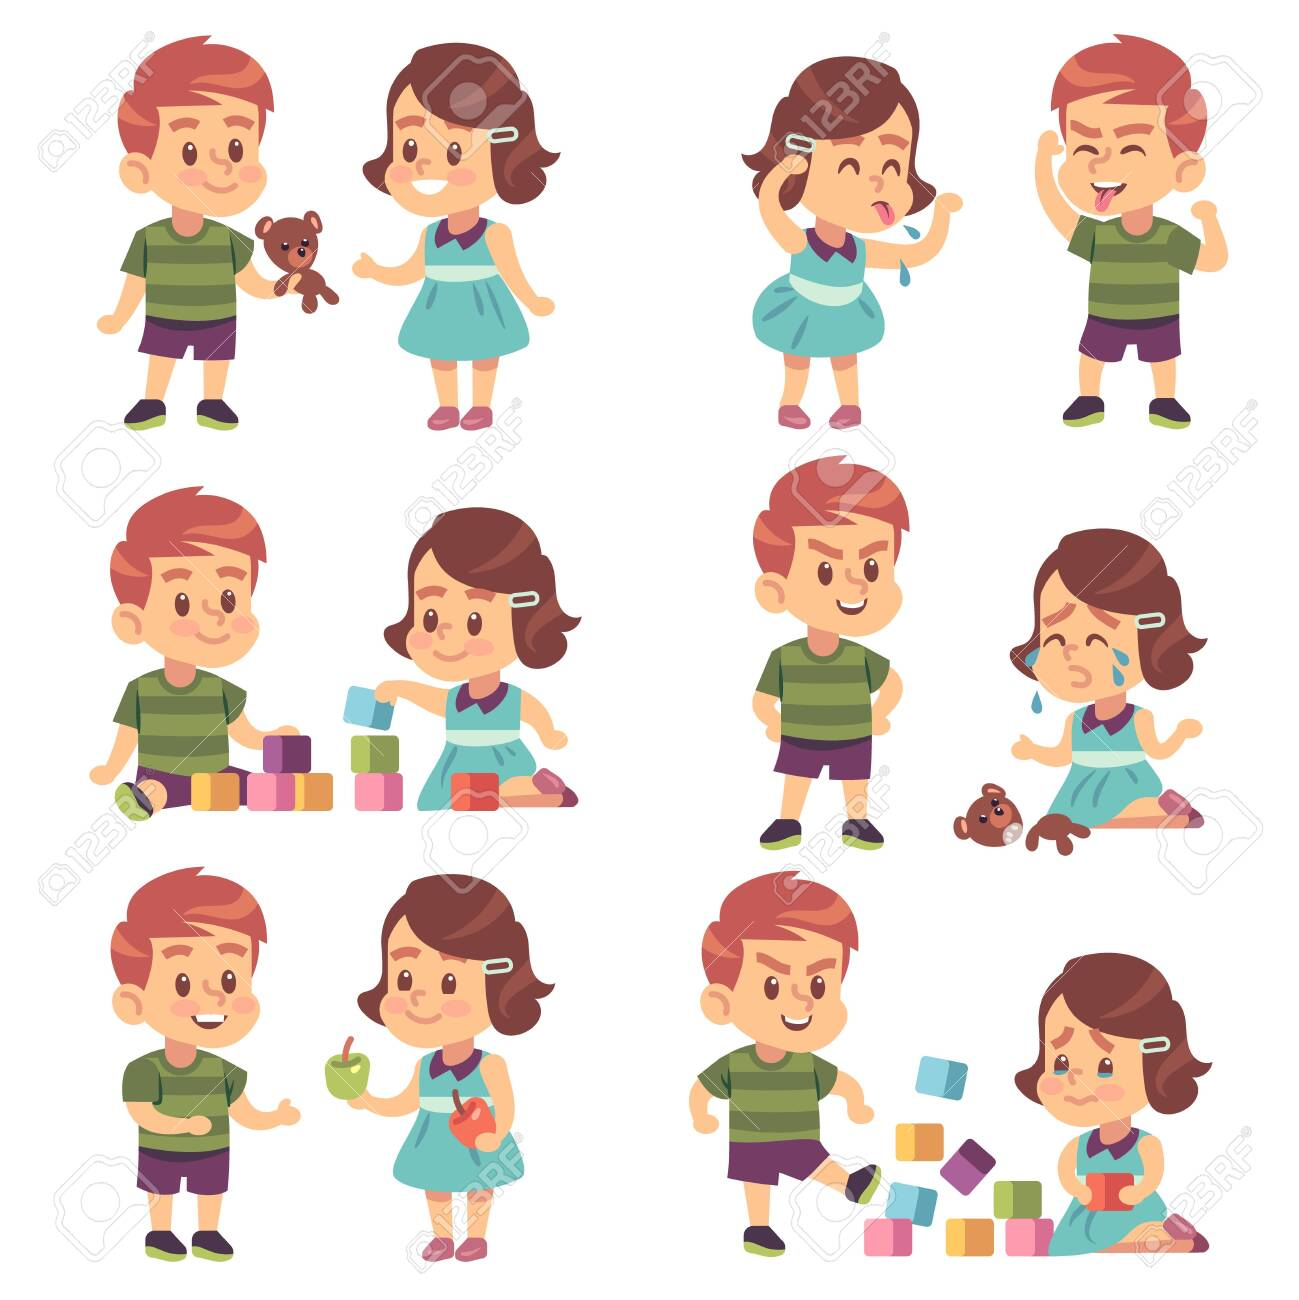 Good and bad behavior. Naughty and obedient kids, angry, aggressive bully and funny, polite manners children, cartoon vector brother and sister or best friend characters - 142629762